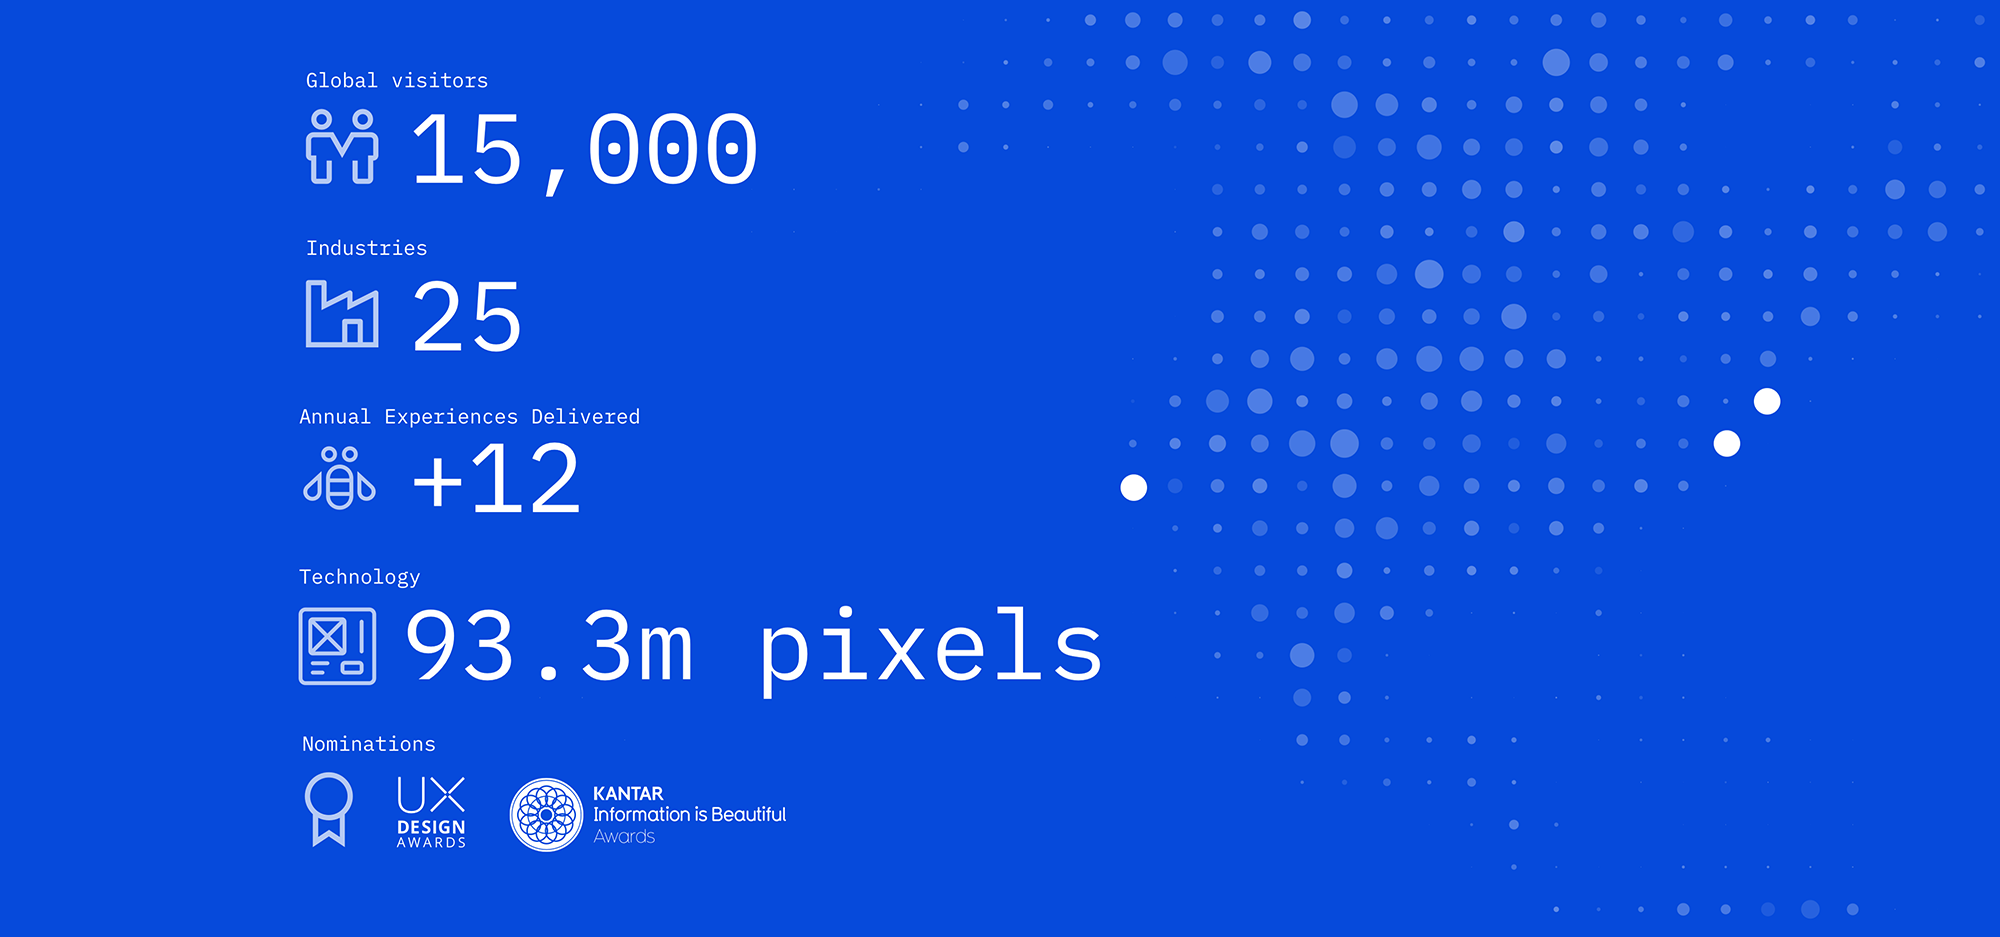 Stats: Global Visitors 15,000, Industries 25, Experience Delivered +12, Technology 93m pixels, Nominations UX Design Awards, Kantar Information is Beautiful